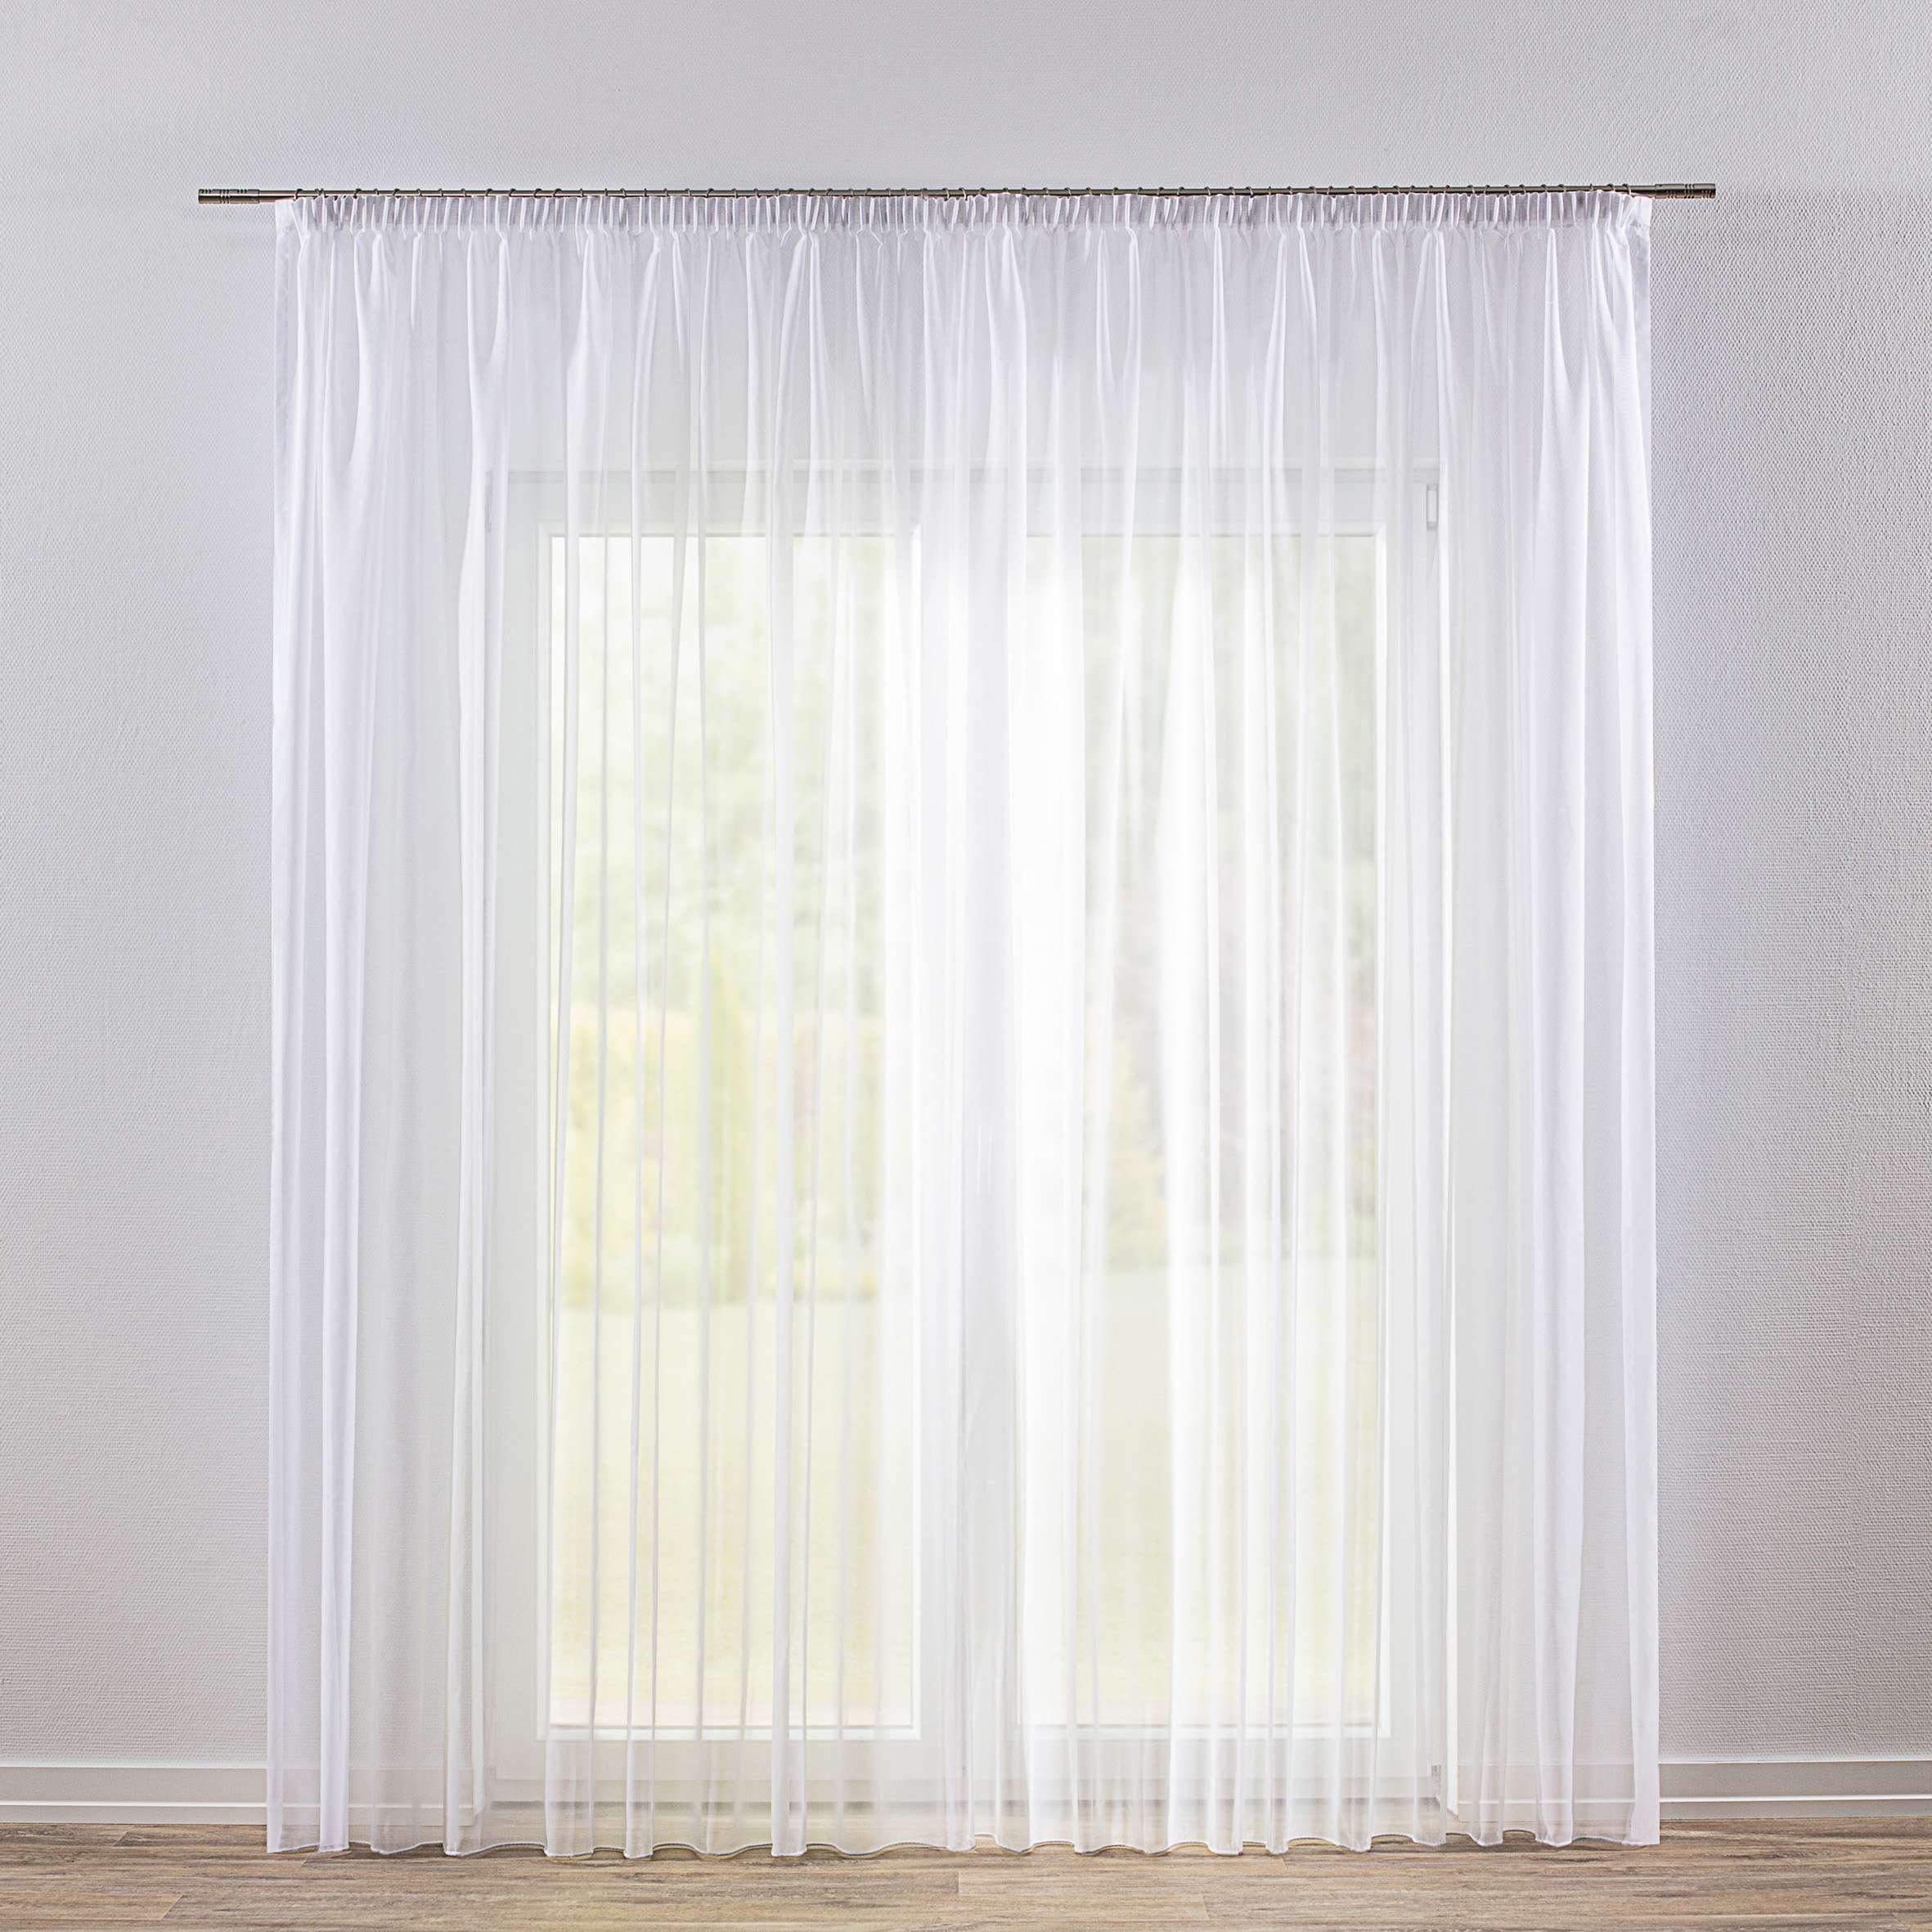 Pencil pleat voile/net curtain 130 × 250 cm (51 × 98,5 inch) in collection Voile, fabric: 901-00